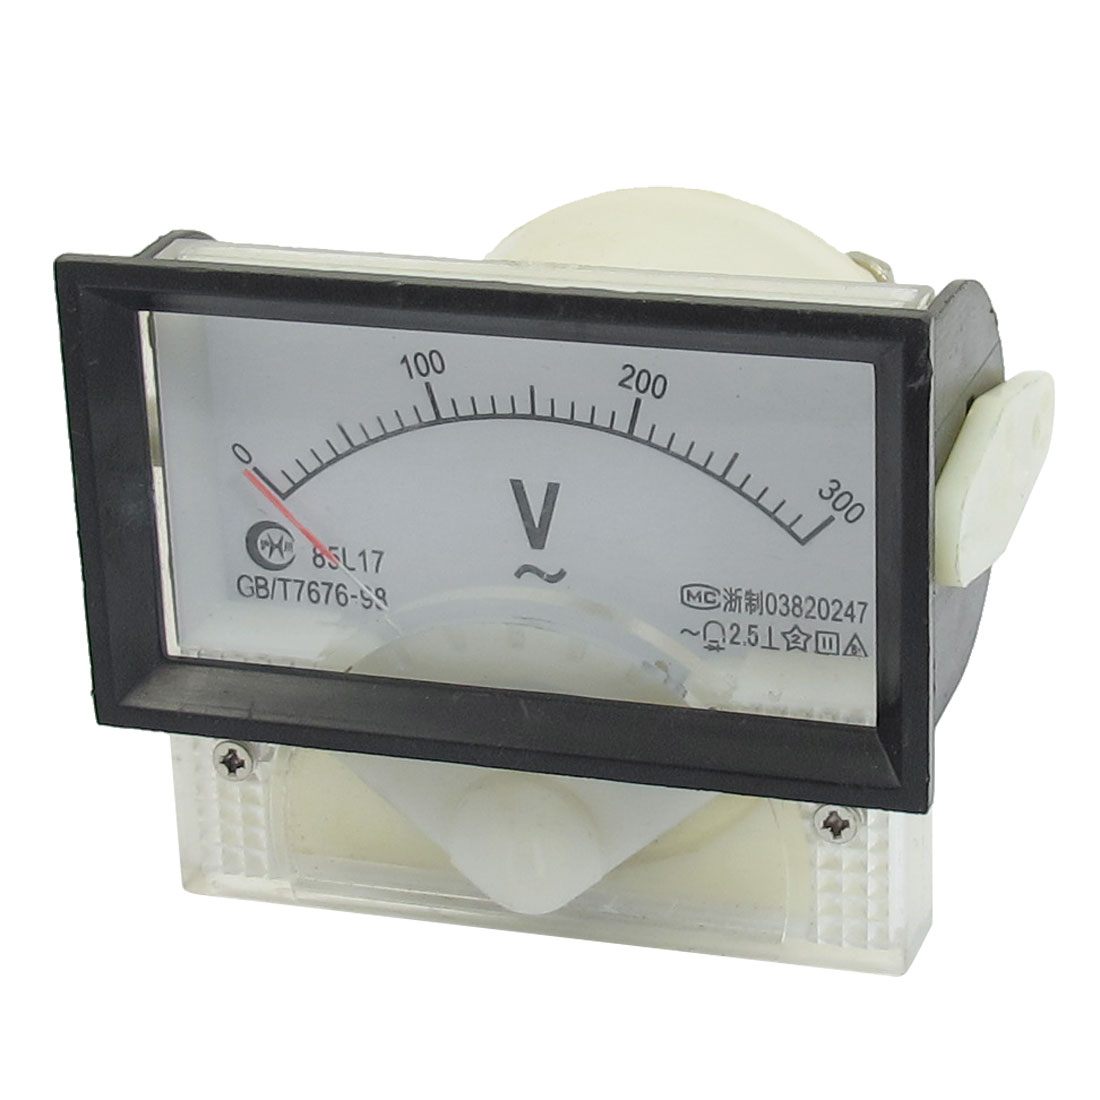 AC 0-300V Analog Volt Voltage Voltmeter Meter Panel 85L17